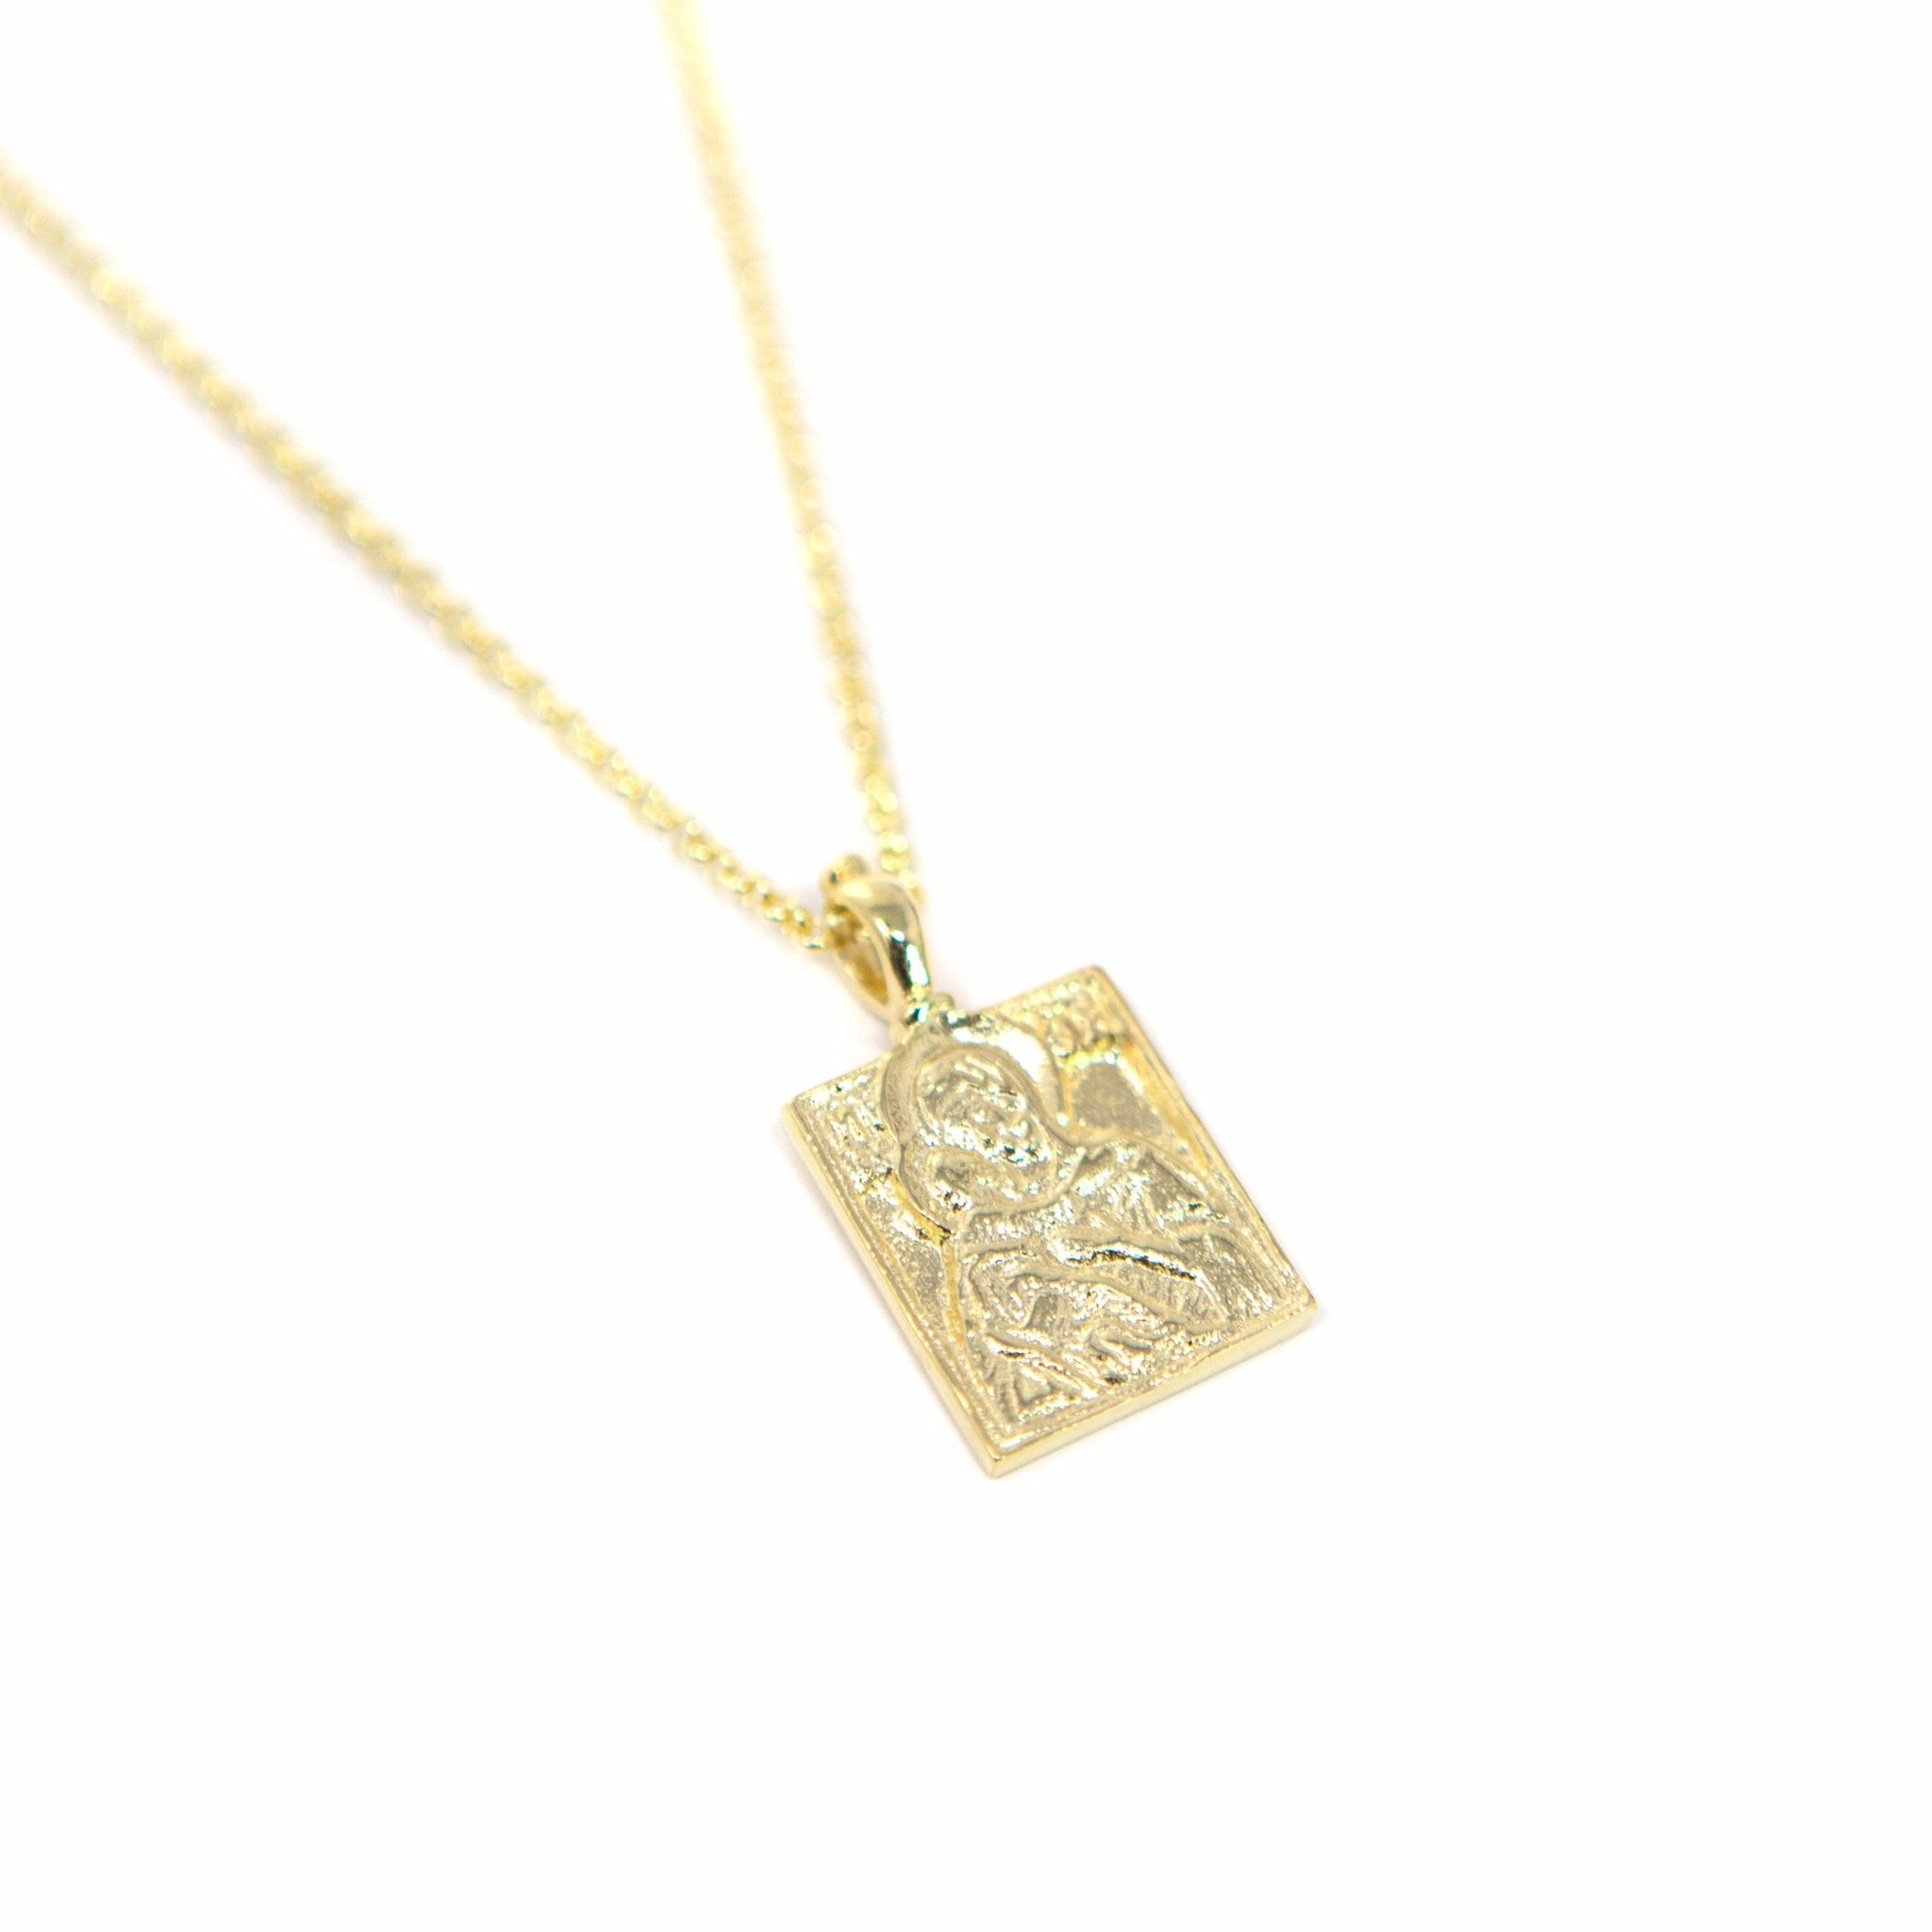 Share the Faith - Rectangular Pendants